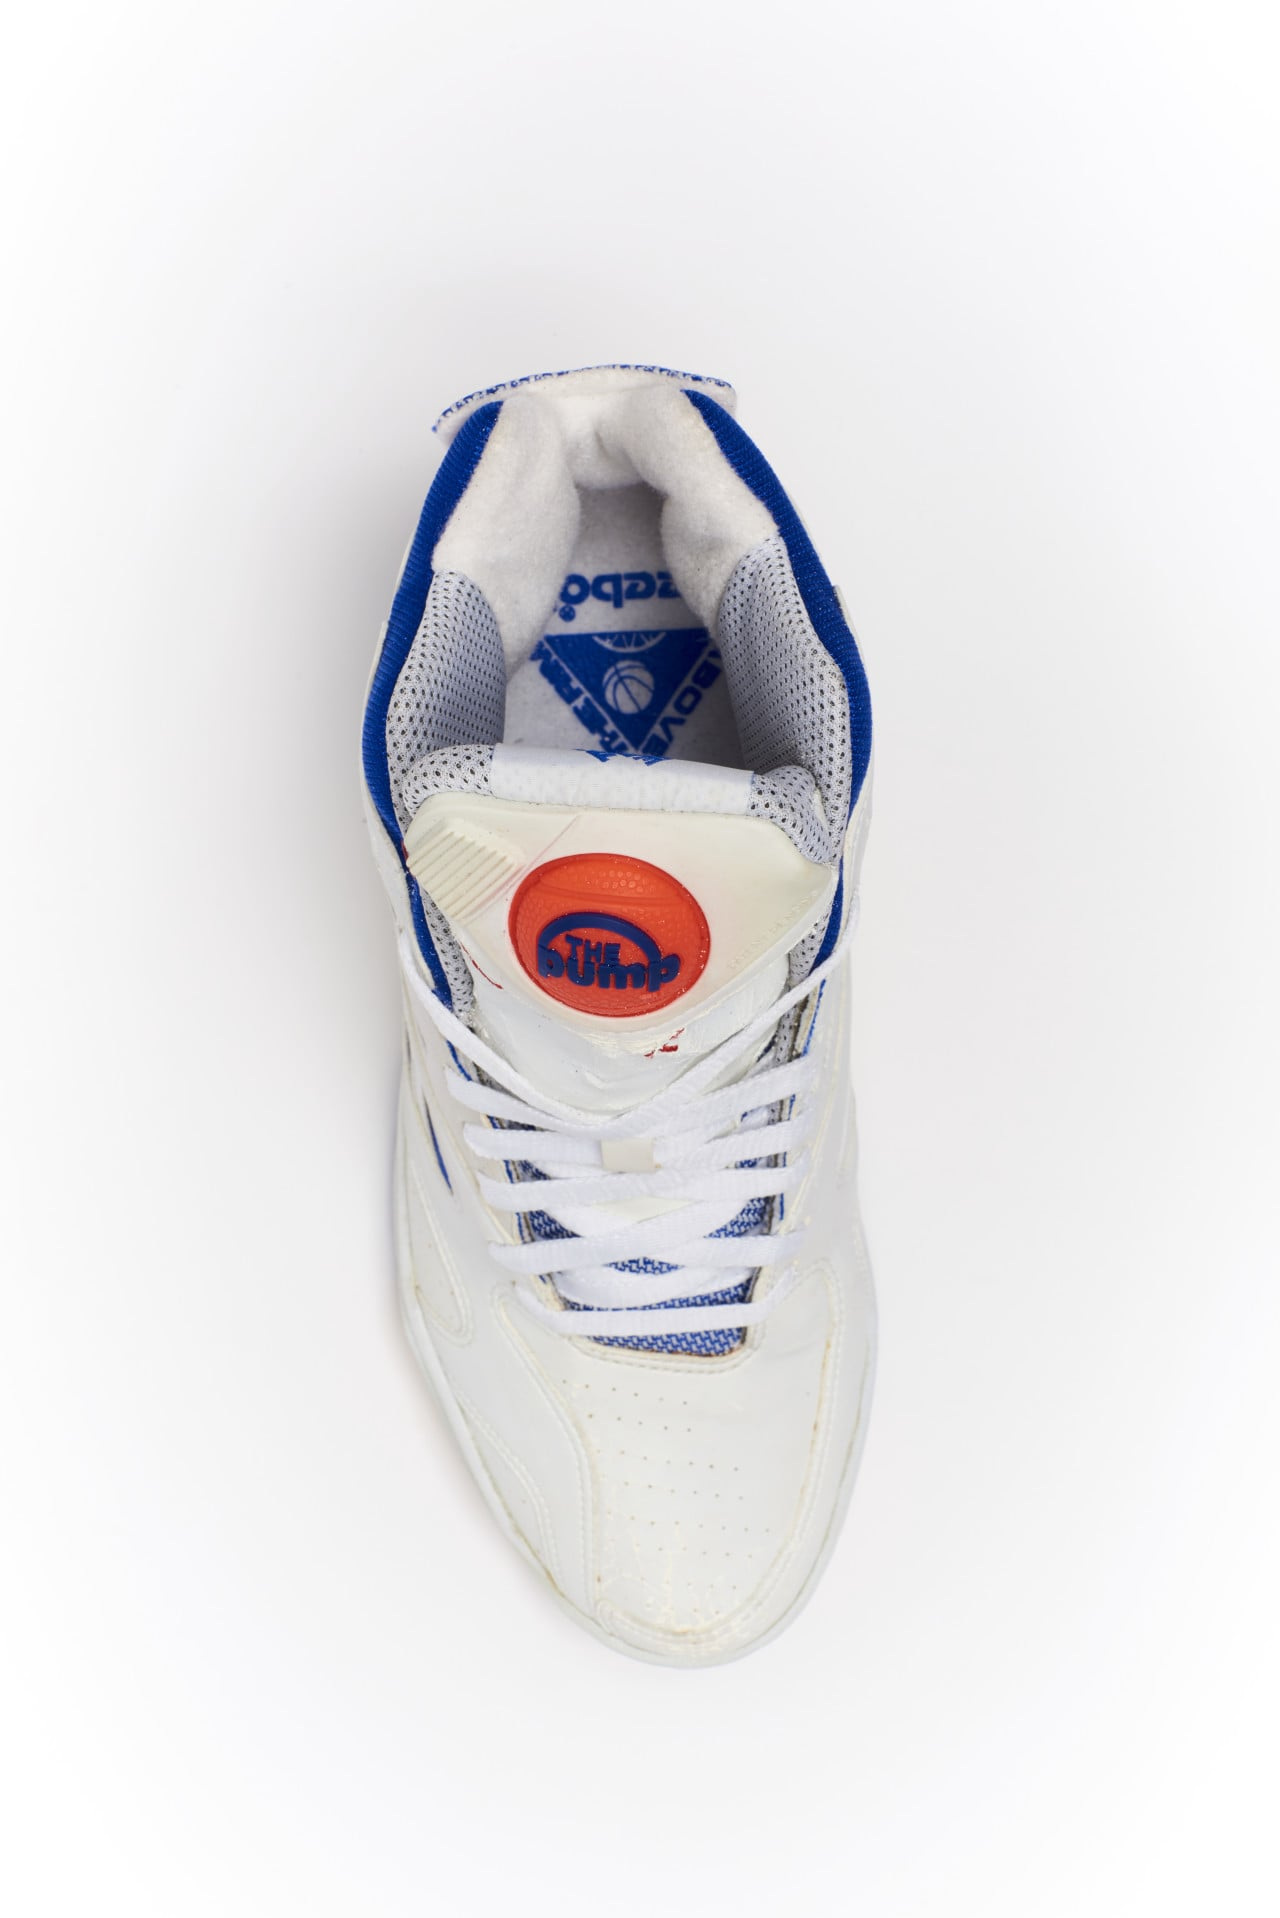 ab77cd7d3a1e How The Reebok Pump Became An Icon In The Sneaker World